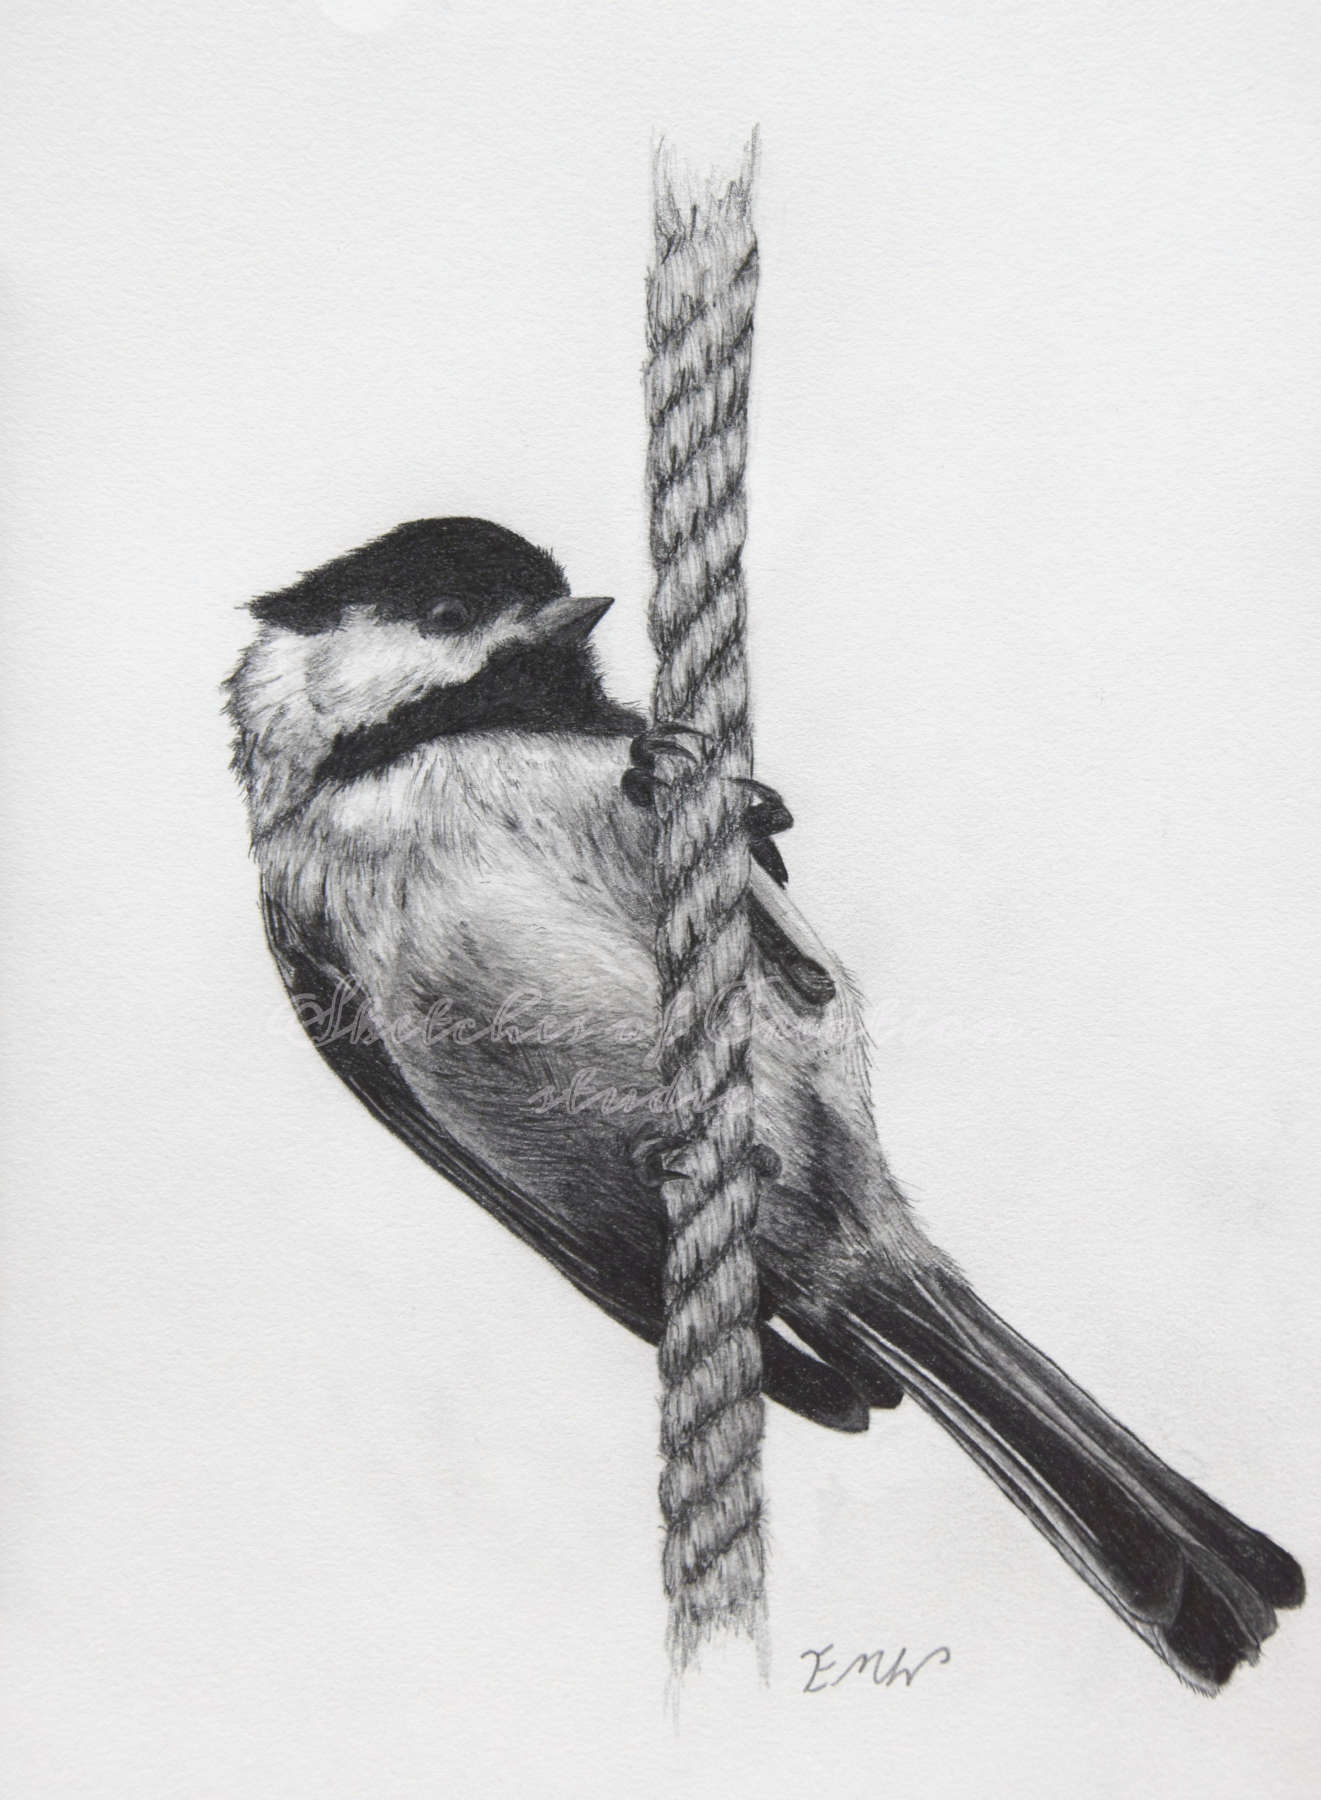 'Chickadee' a drawing of a chickadee on a rope. 6x8 inches. Completed January 2018